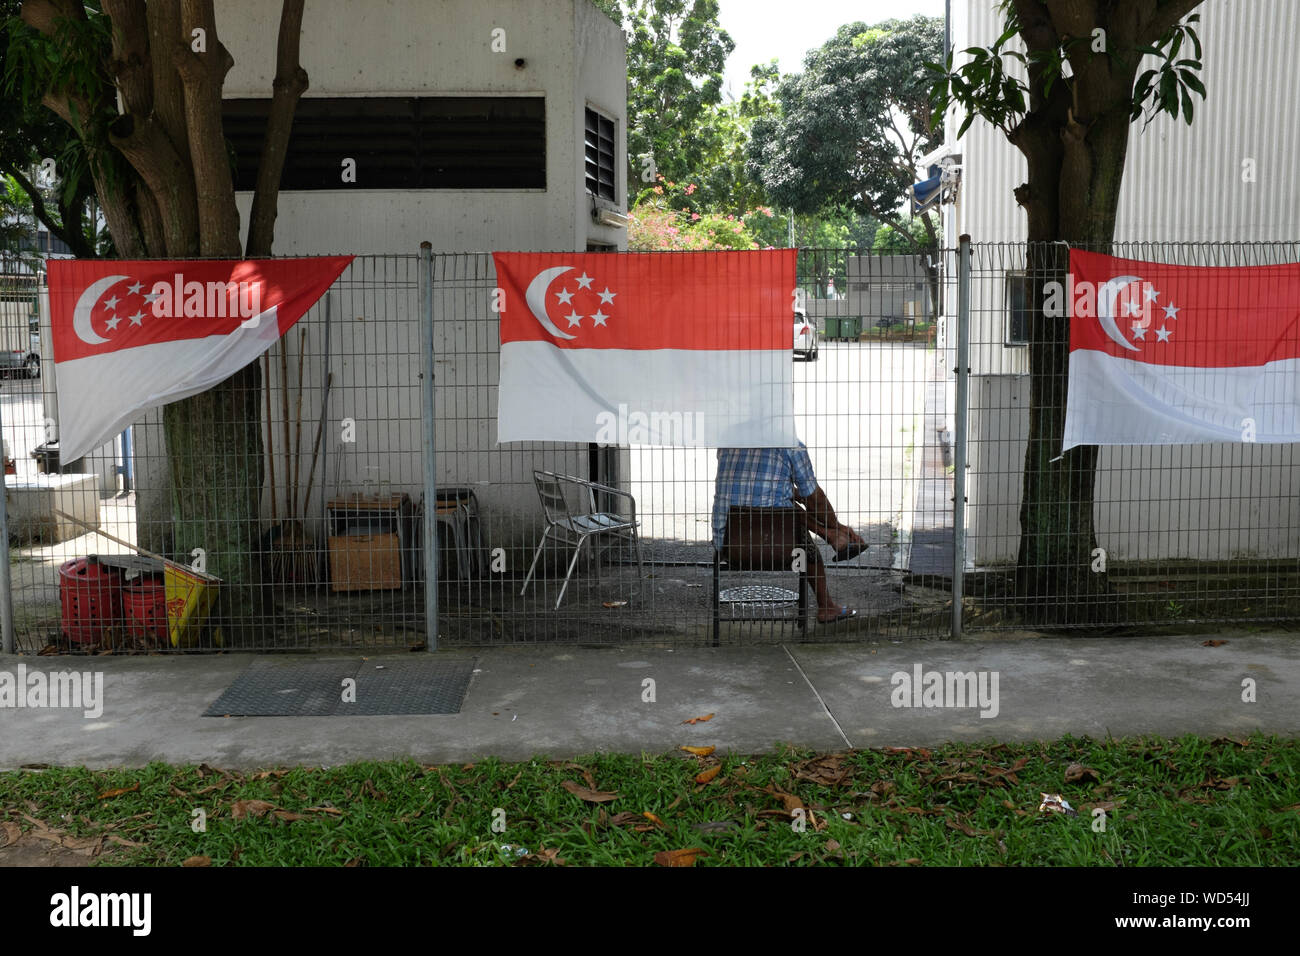 Singaporean Flags On Fence Against Building Stock Photo